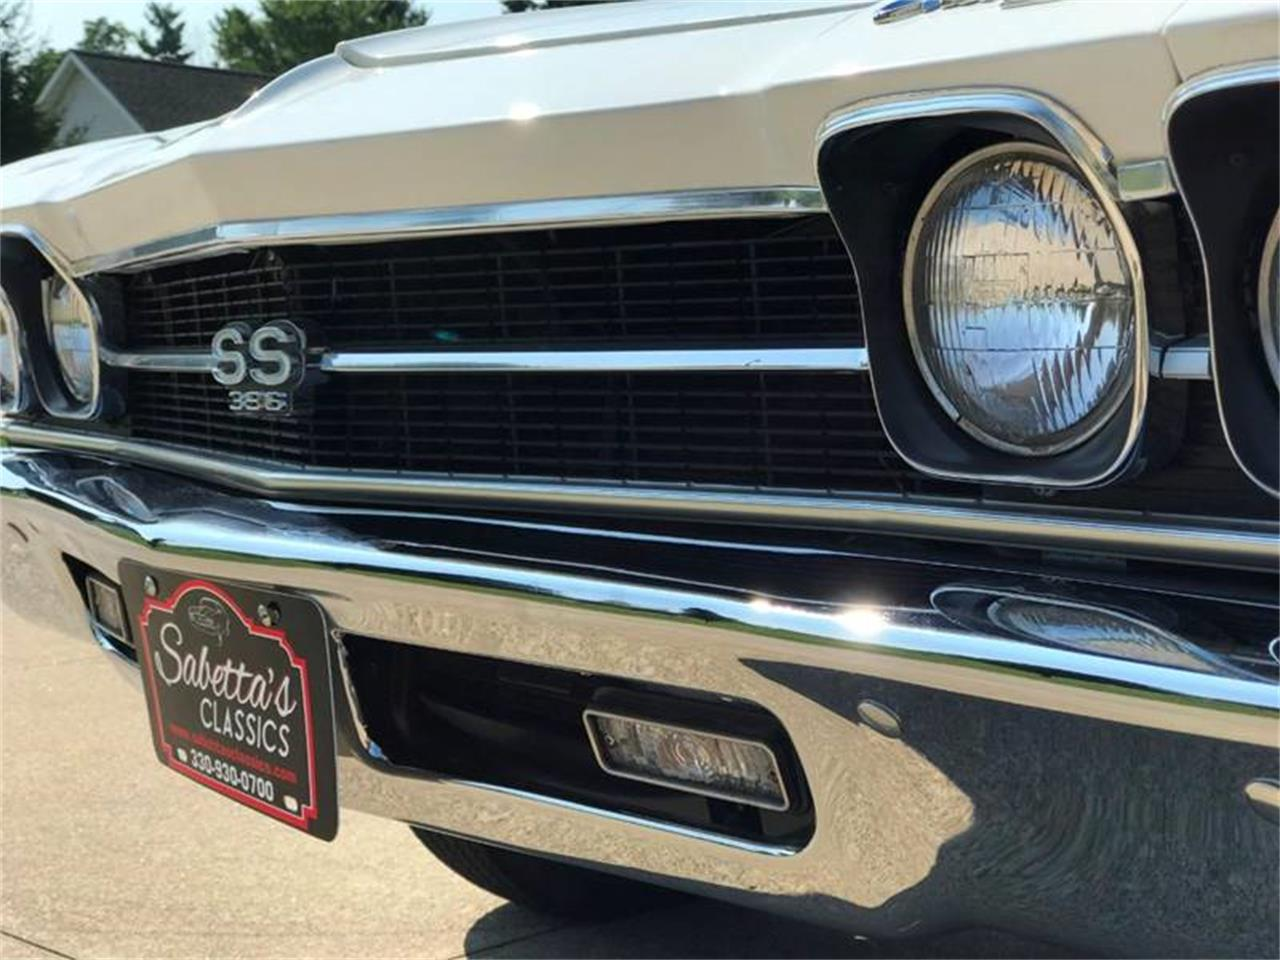 1969 Chevrolet Chevelle for sale in Orville, OH – photo 45